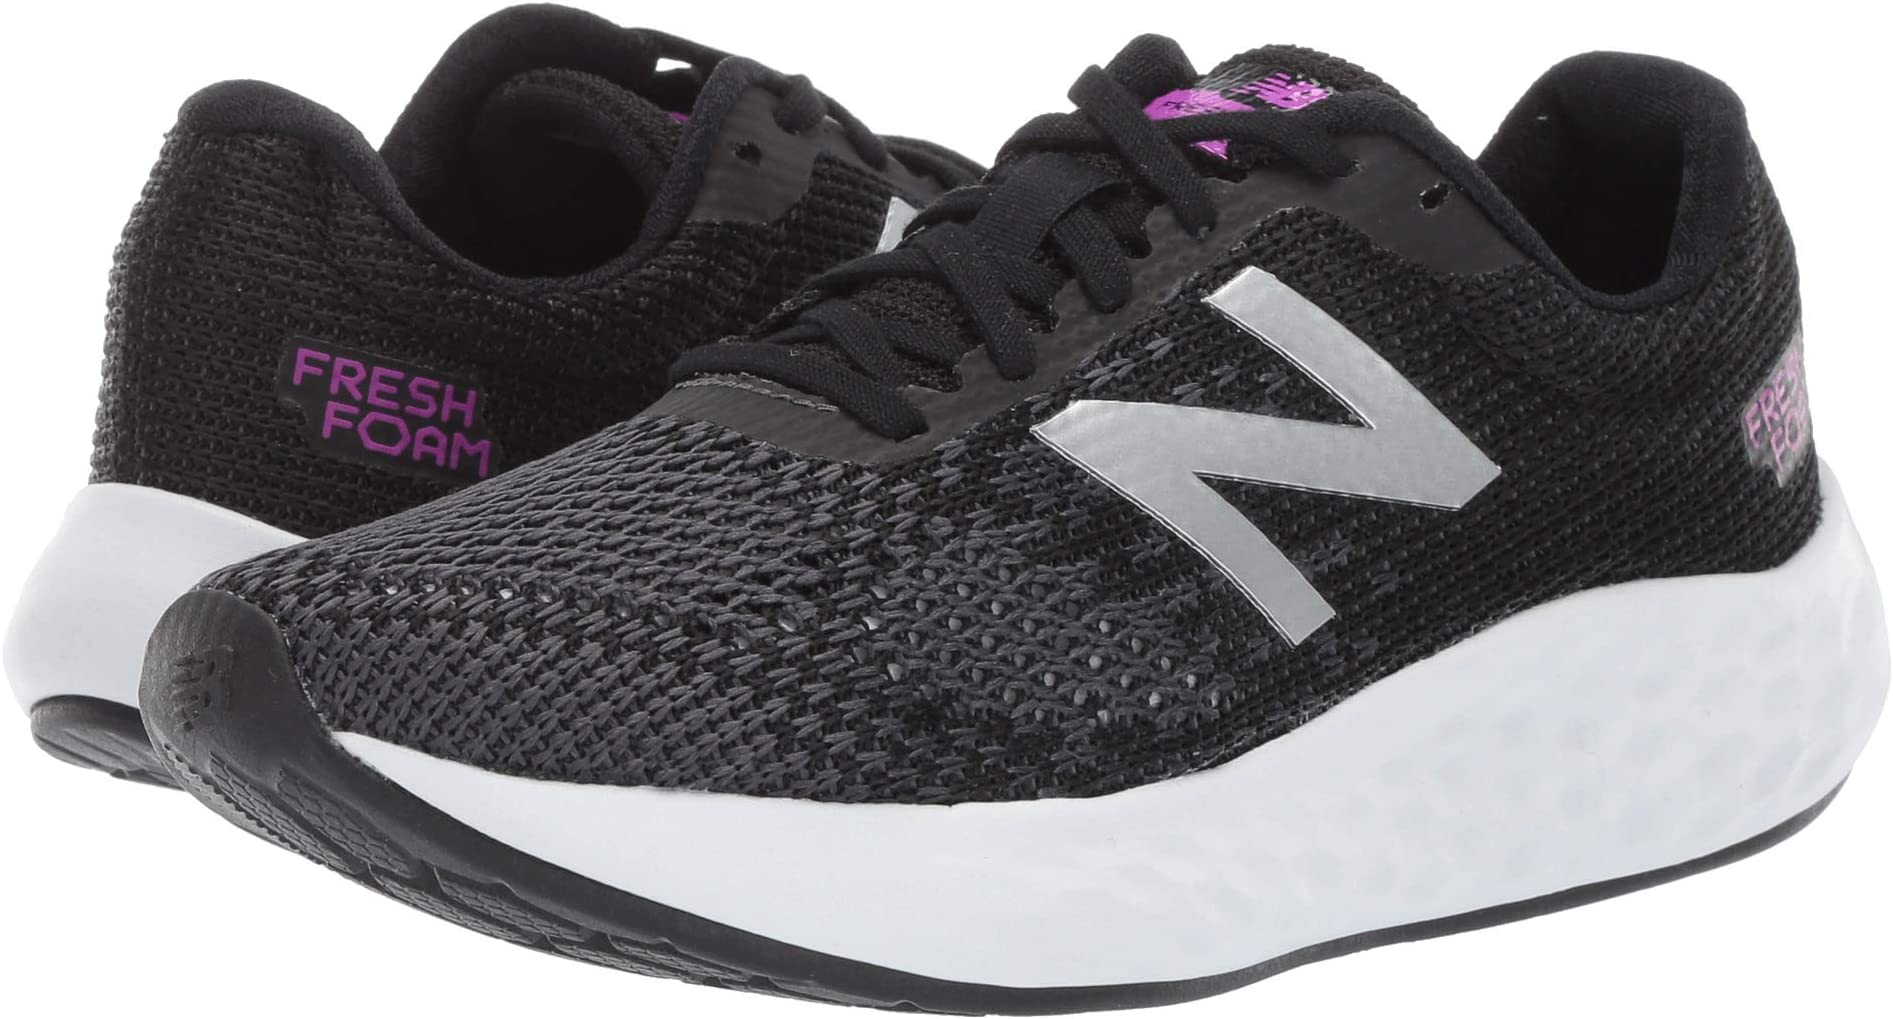 48cdf0f9087f5 New Balance Shoes